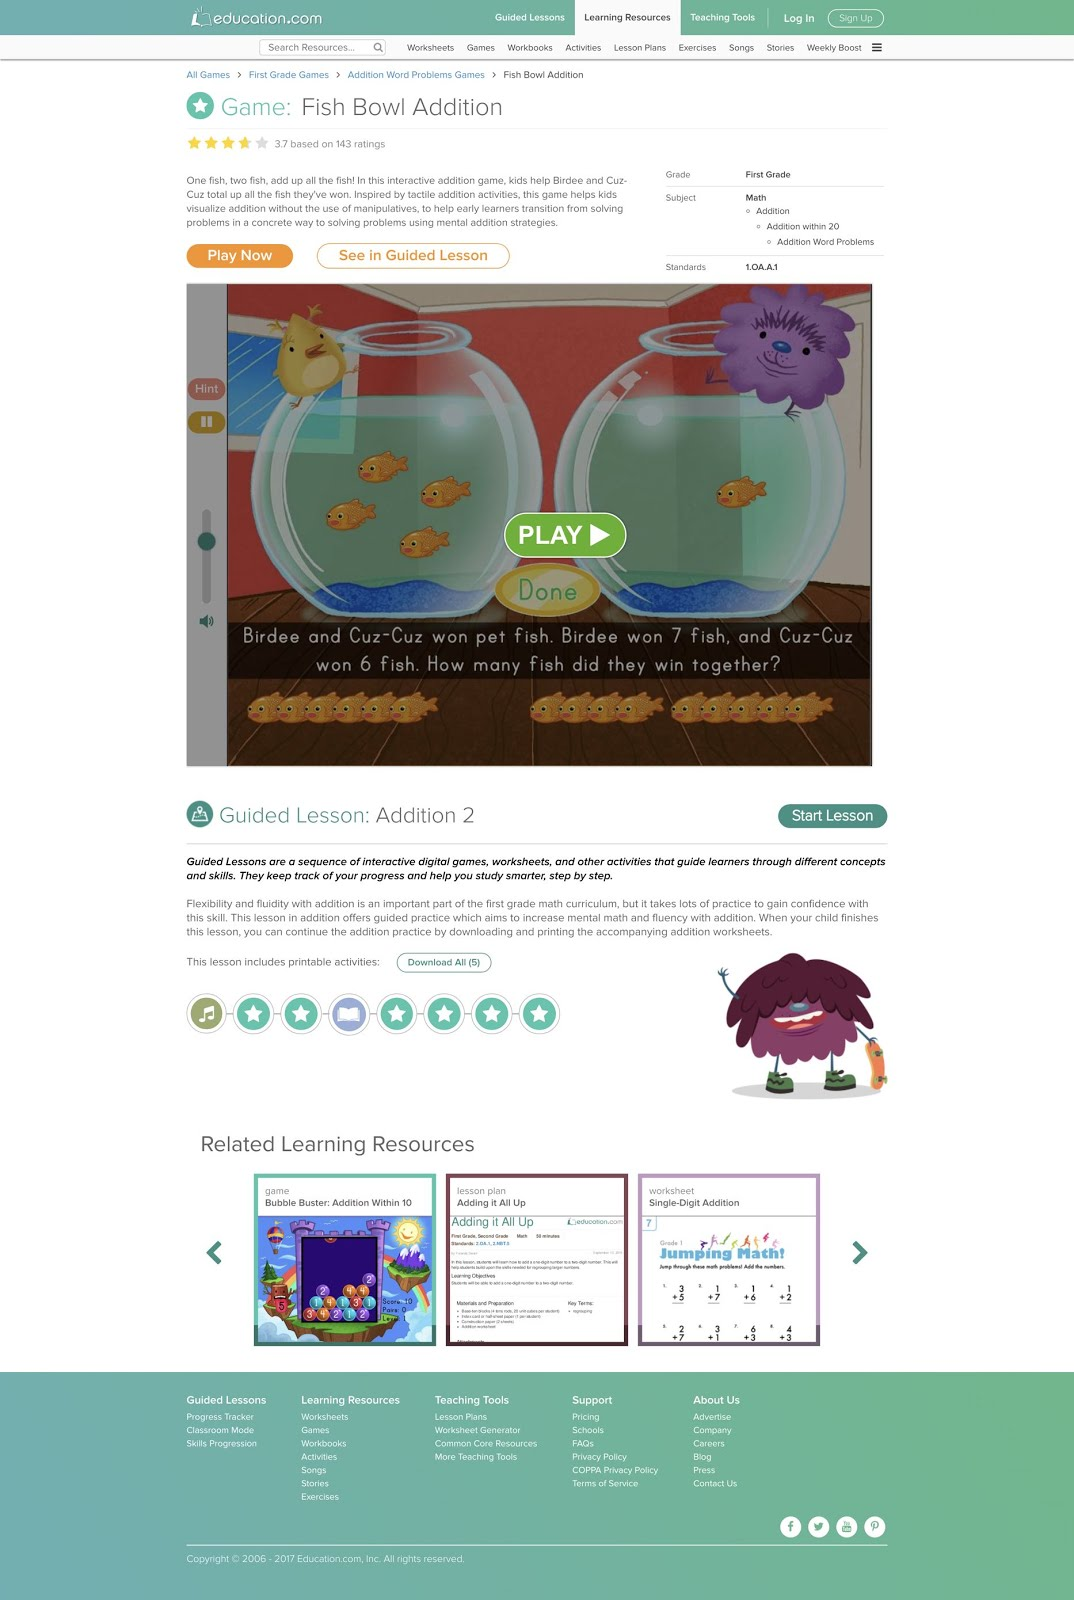 Free online math game - Fish Bowl Addition | TeacherLINK Blog!